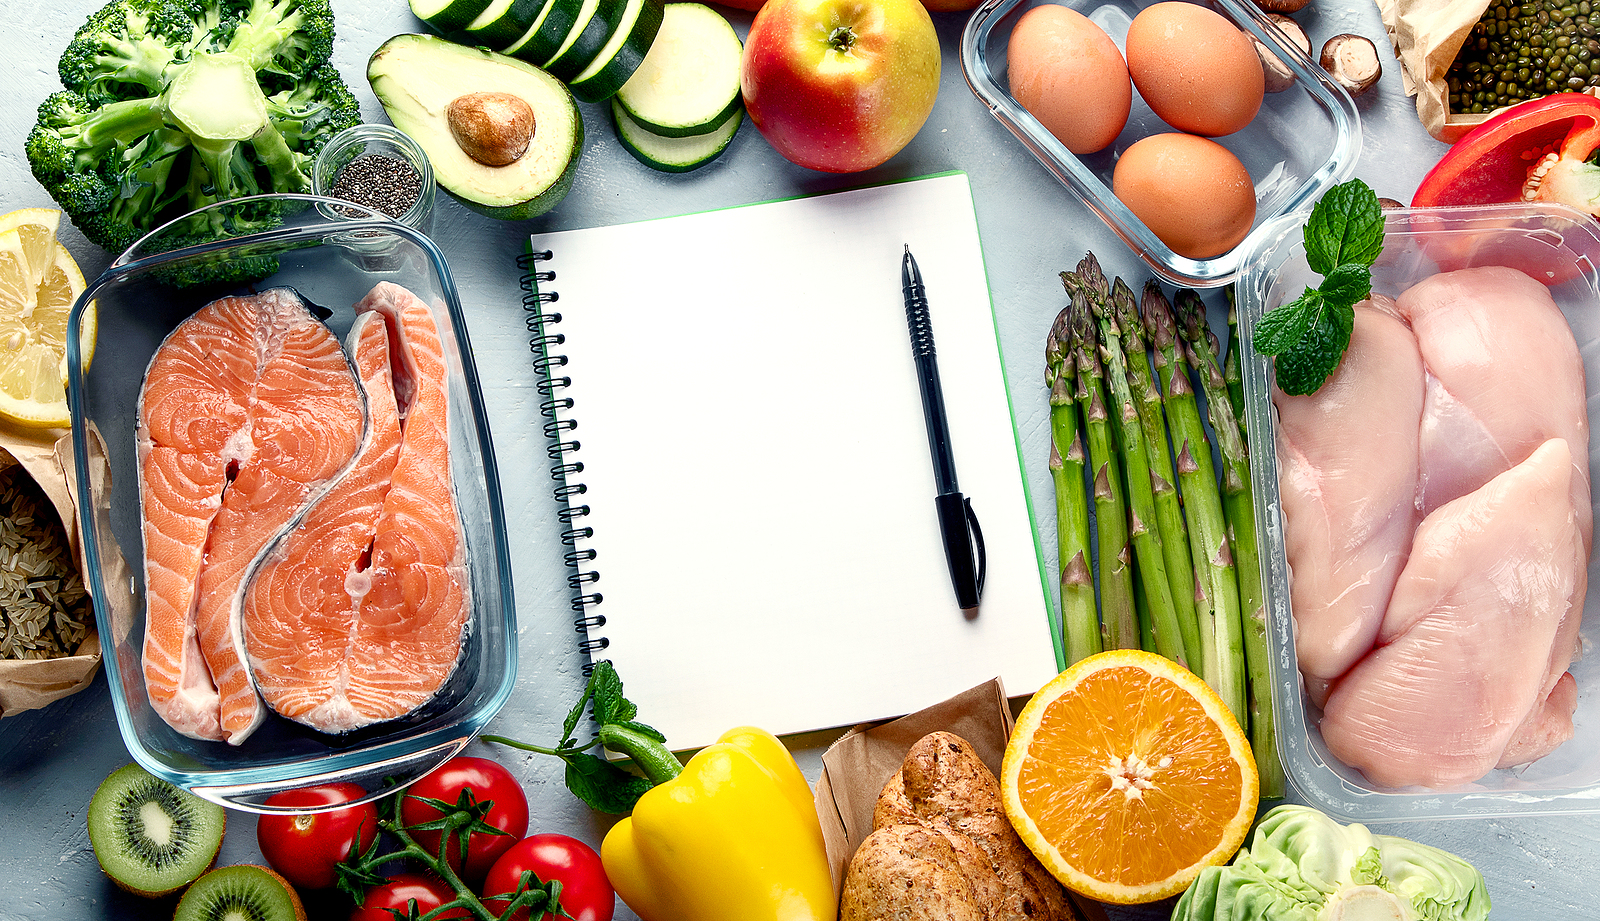 Meal plan for building muscle